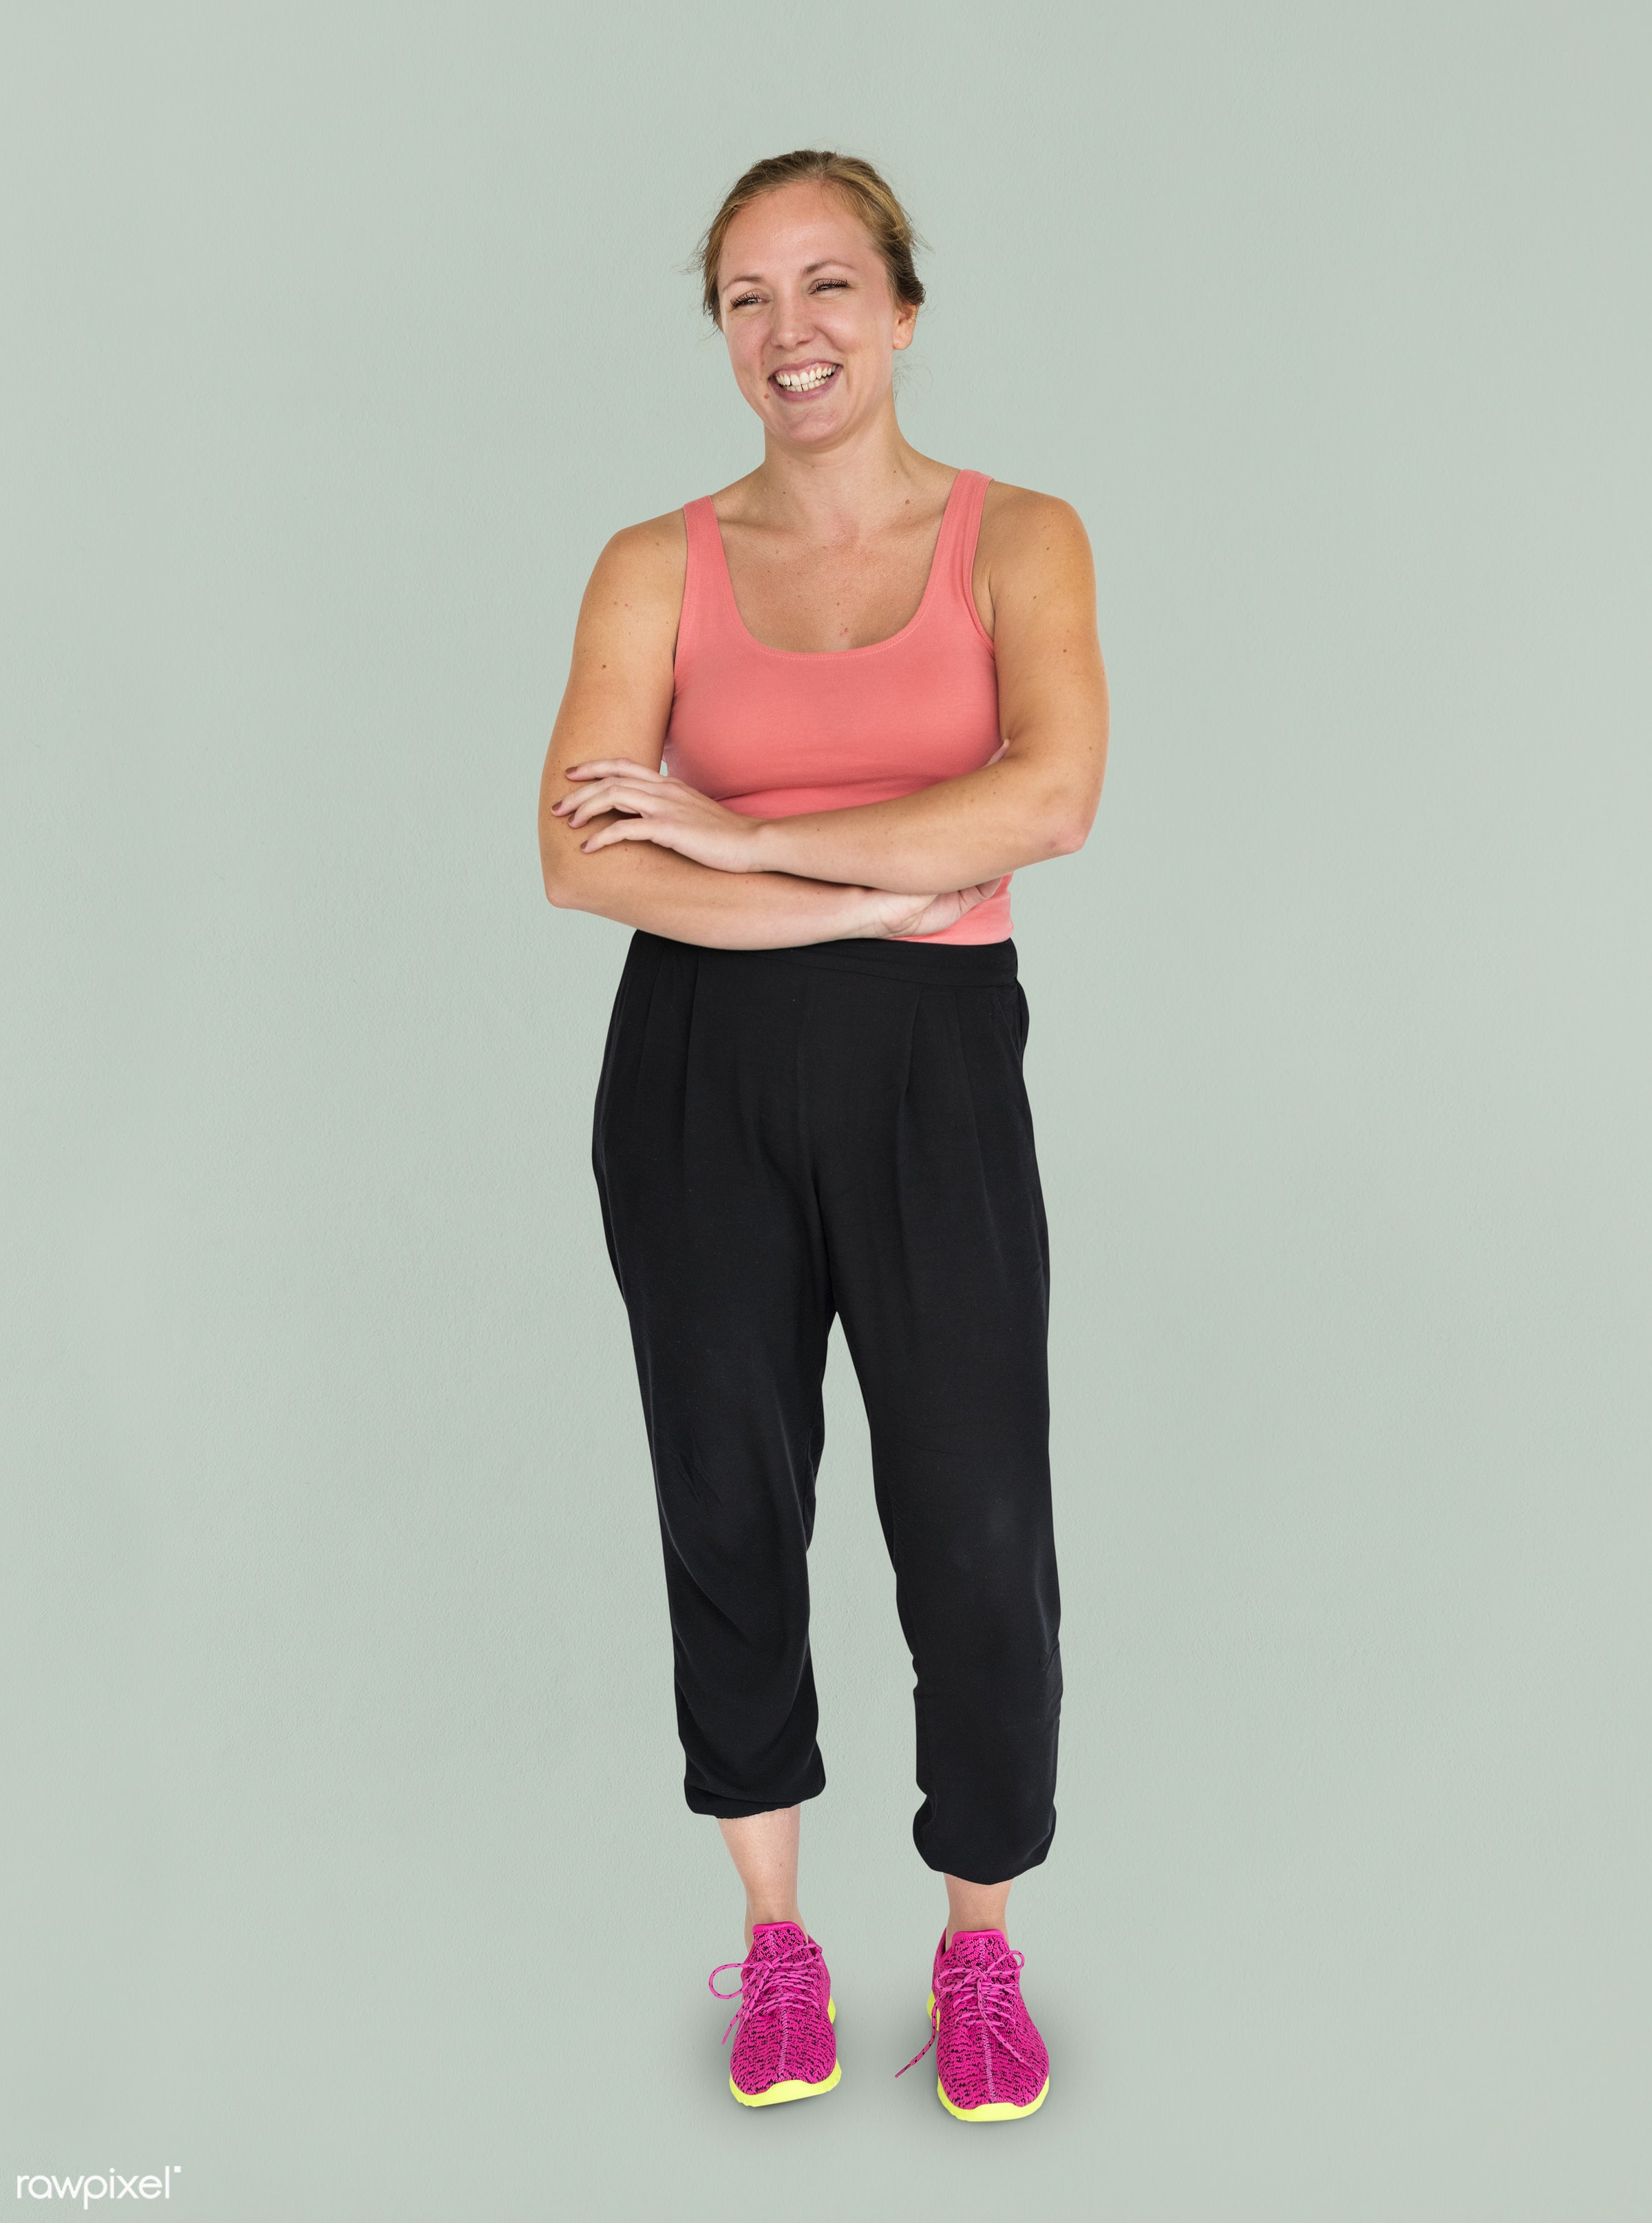 studio, expression, person, model, full length, exercise, race, people, style, woman, lifestyle, casual, smiling, isolated,...